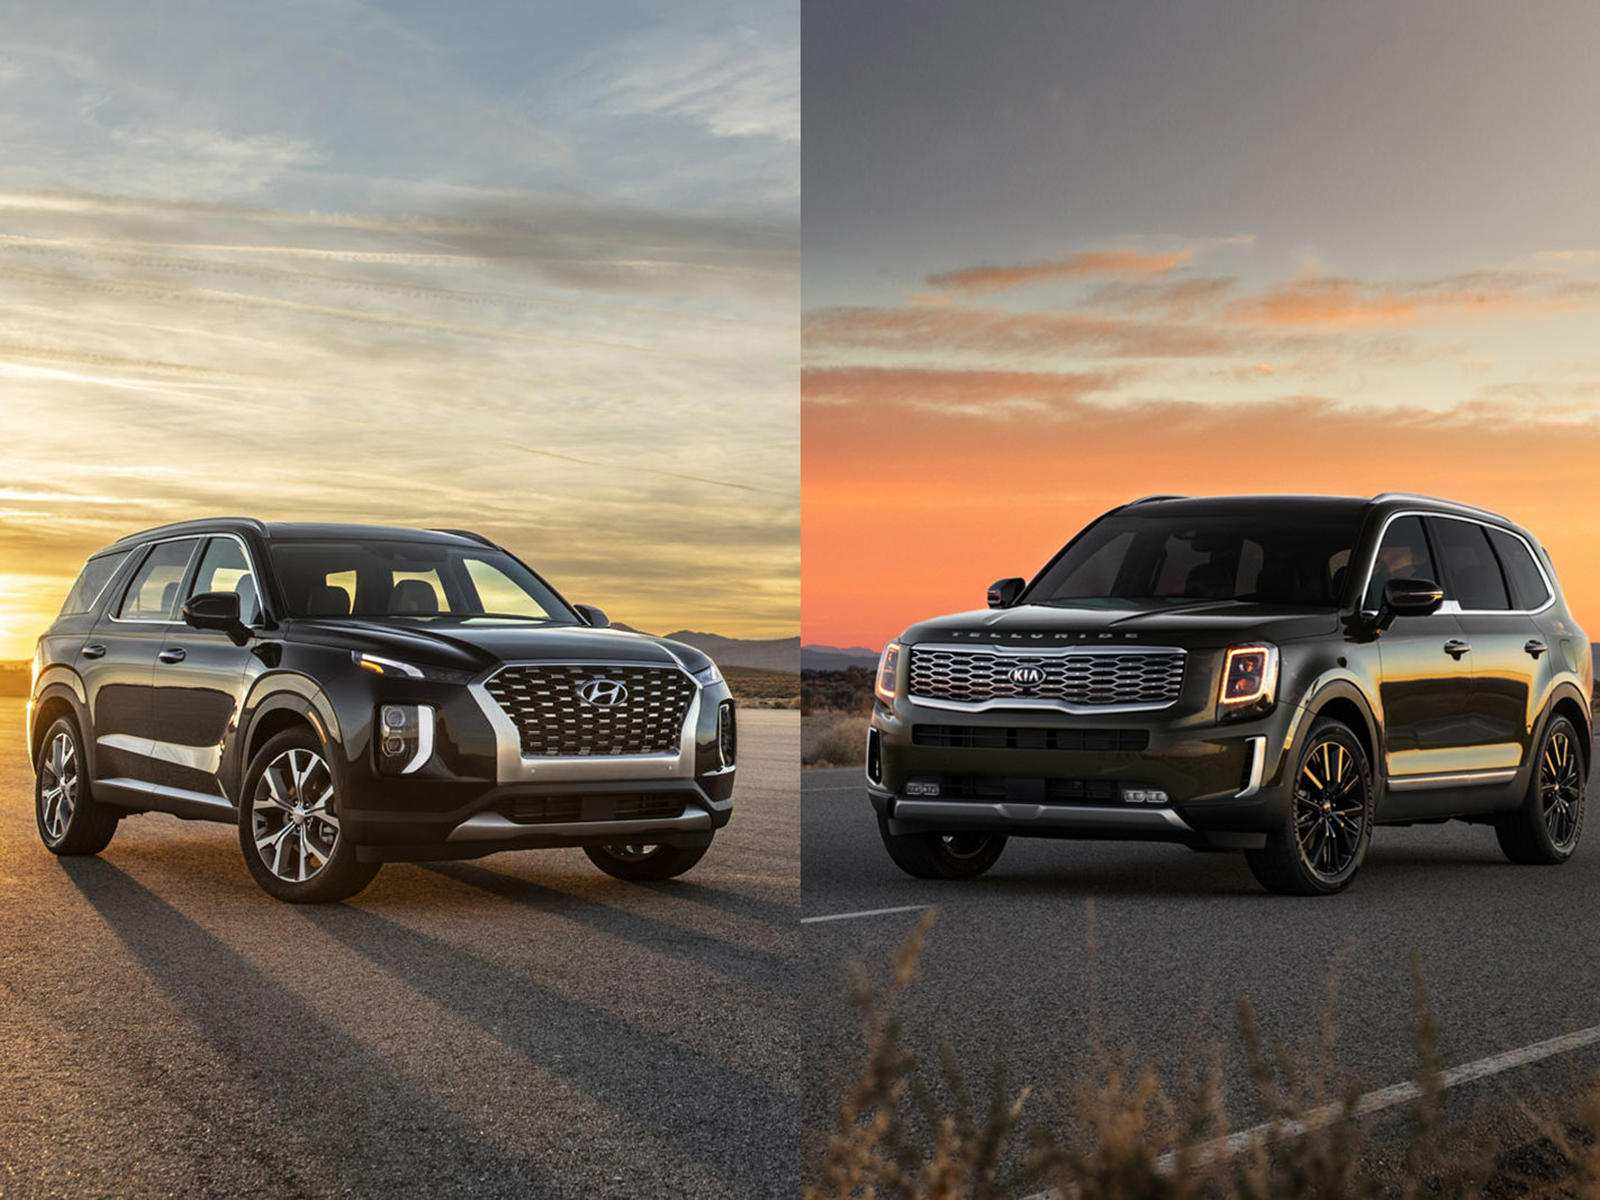 92 The 2020 Hyundai Palisade Vs Kia Telluride Exterior and Interior with 2020 Hyundai Palisade Vs Kia Telluride